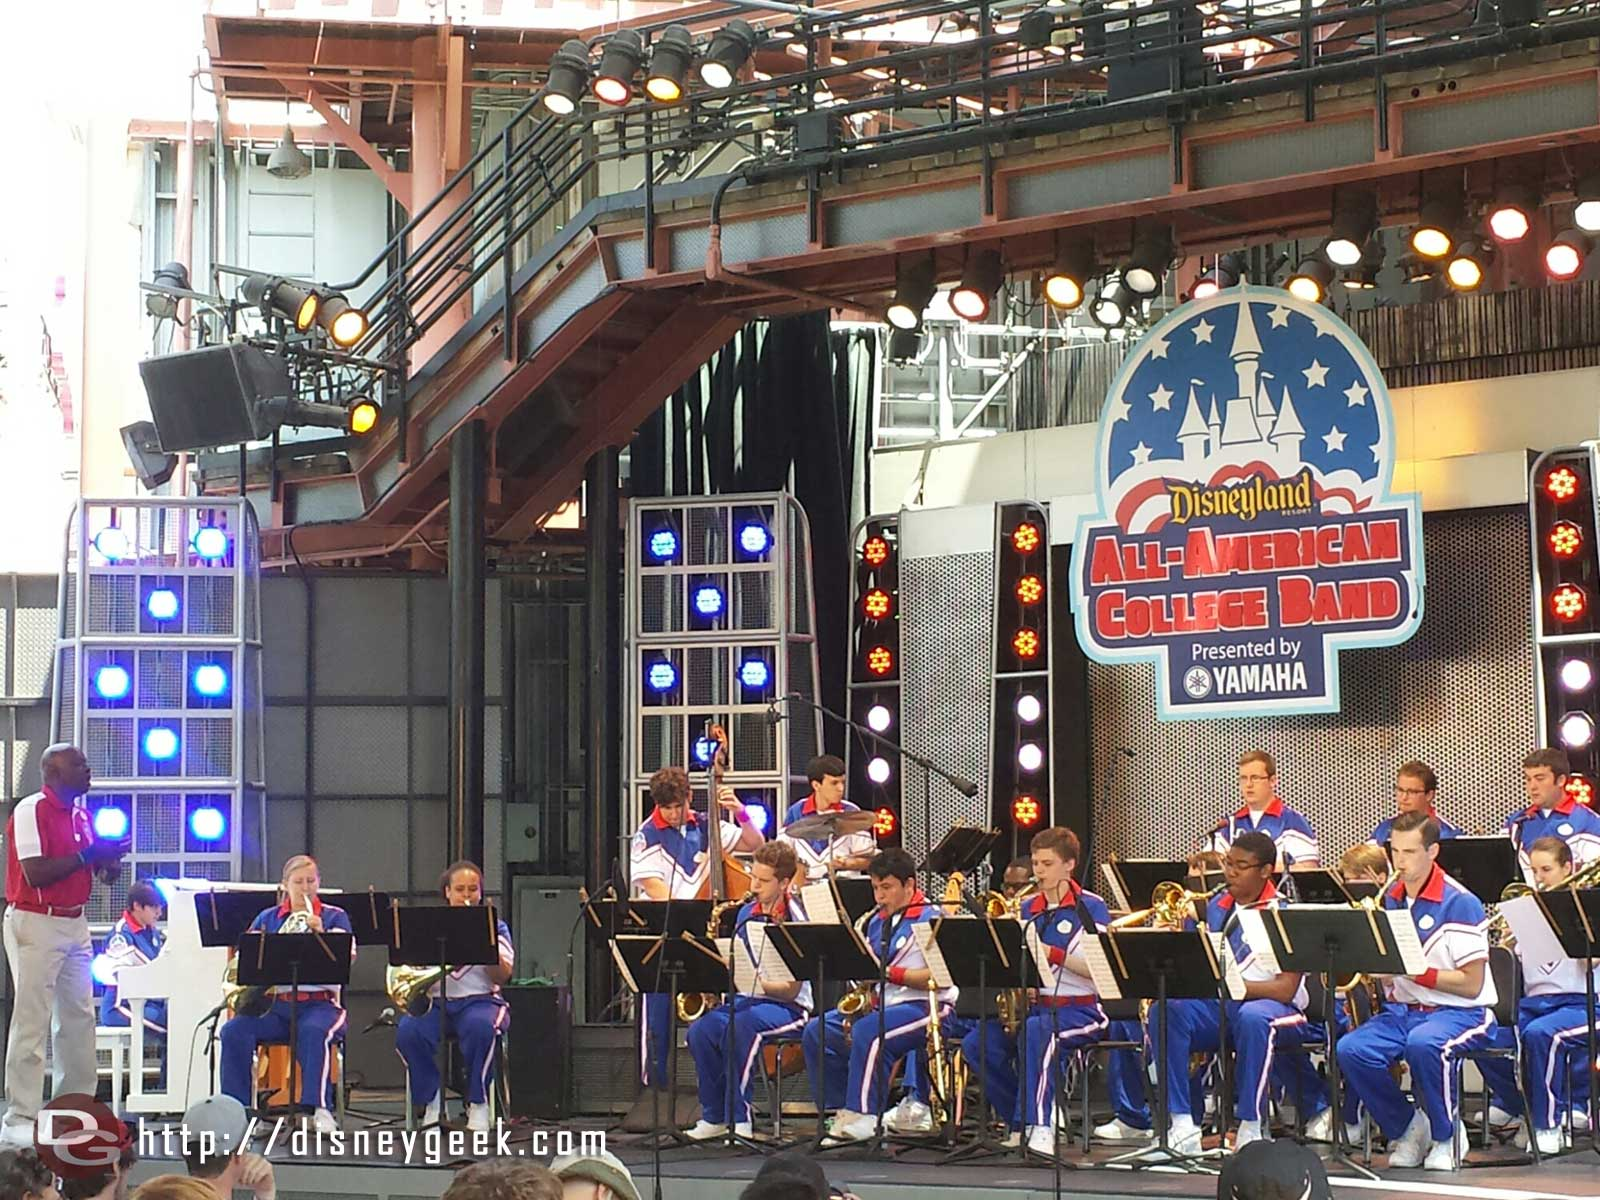 #Disneyland All-American College Band performing on the Hollywood Backlot Stage at Disney California Adventure